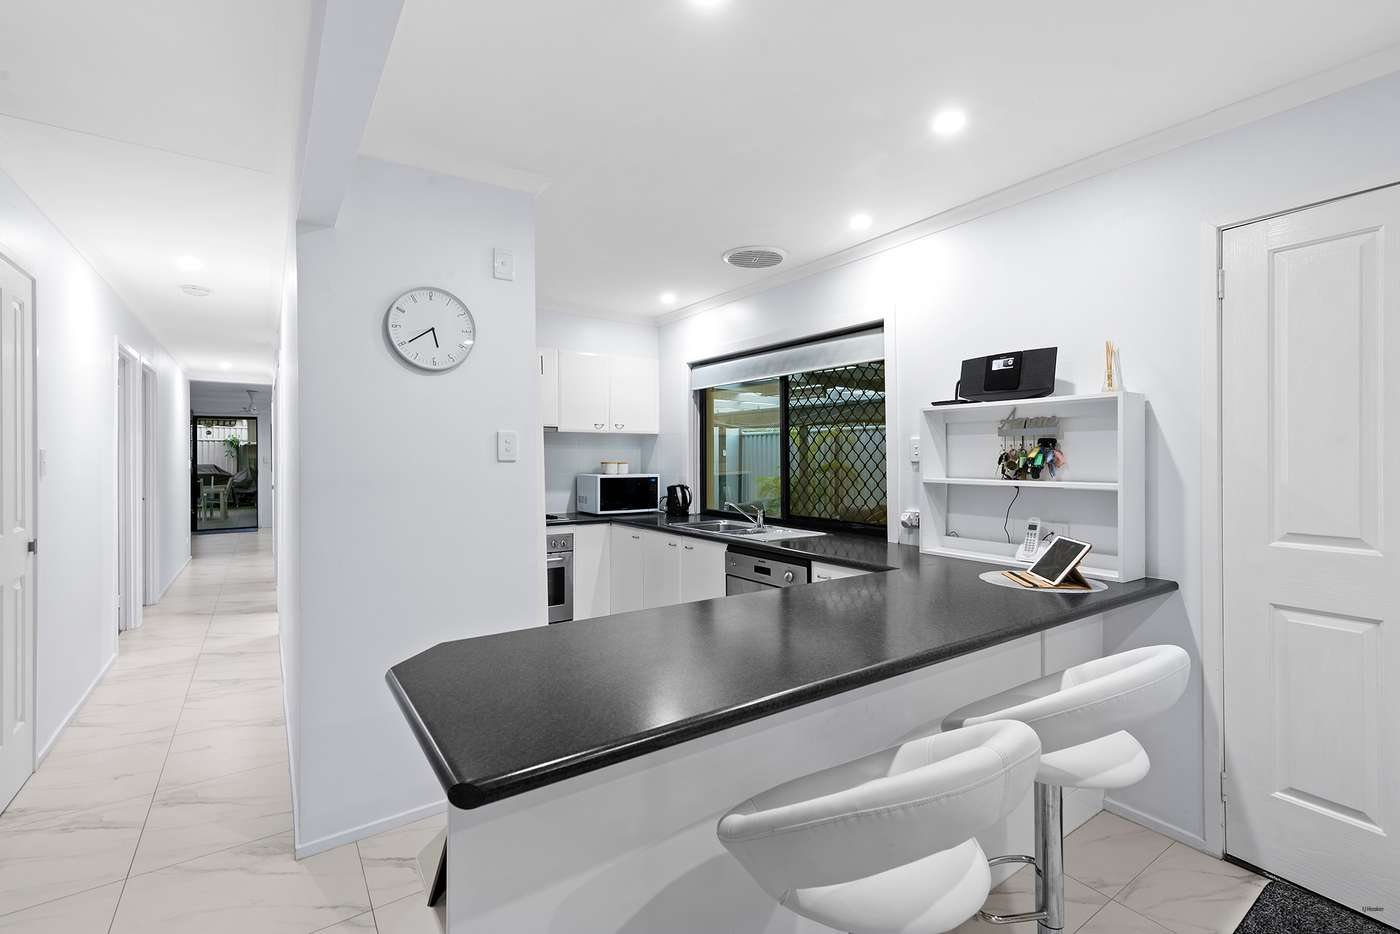 Fifth view of Homely house listing, 66 Twenty Fifth Avenue, Palm Beach QLD 4221